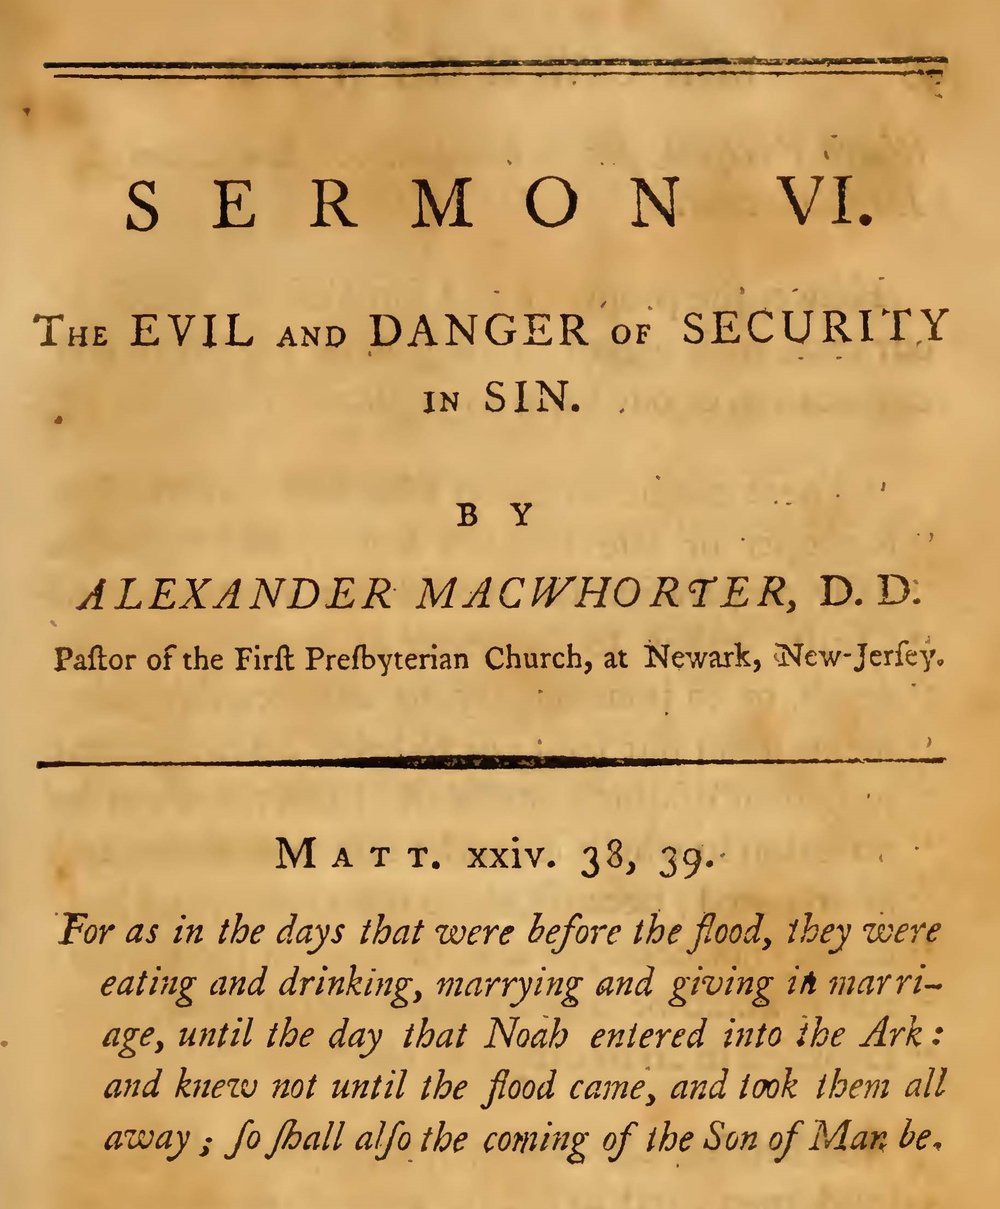 MacWhorter, Alexander, The Evil and Danger of Security in Sin Title Page.jpg